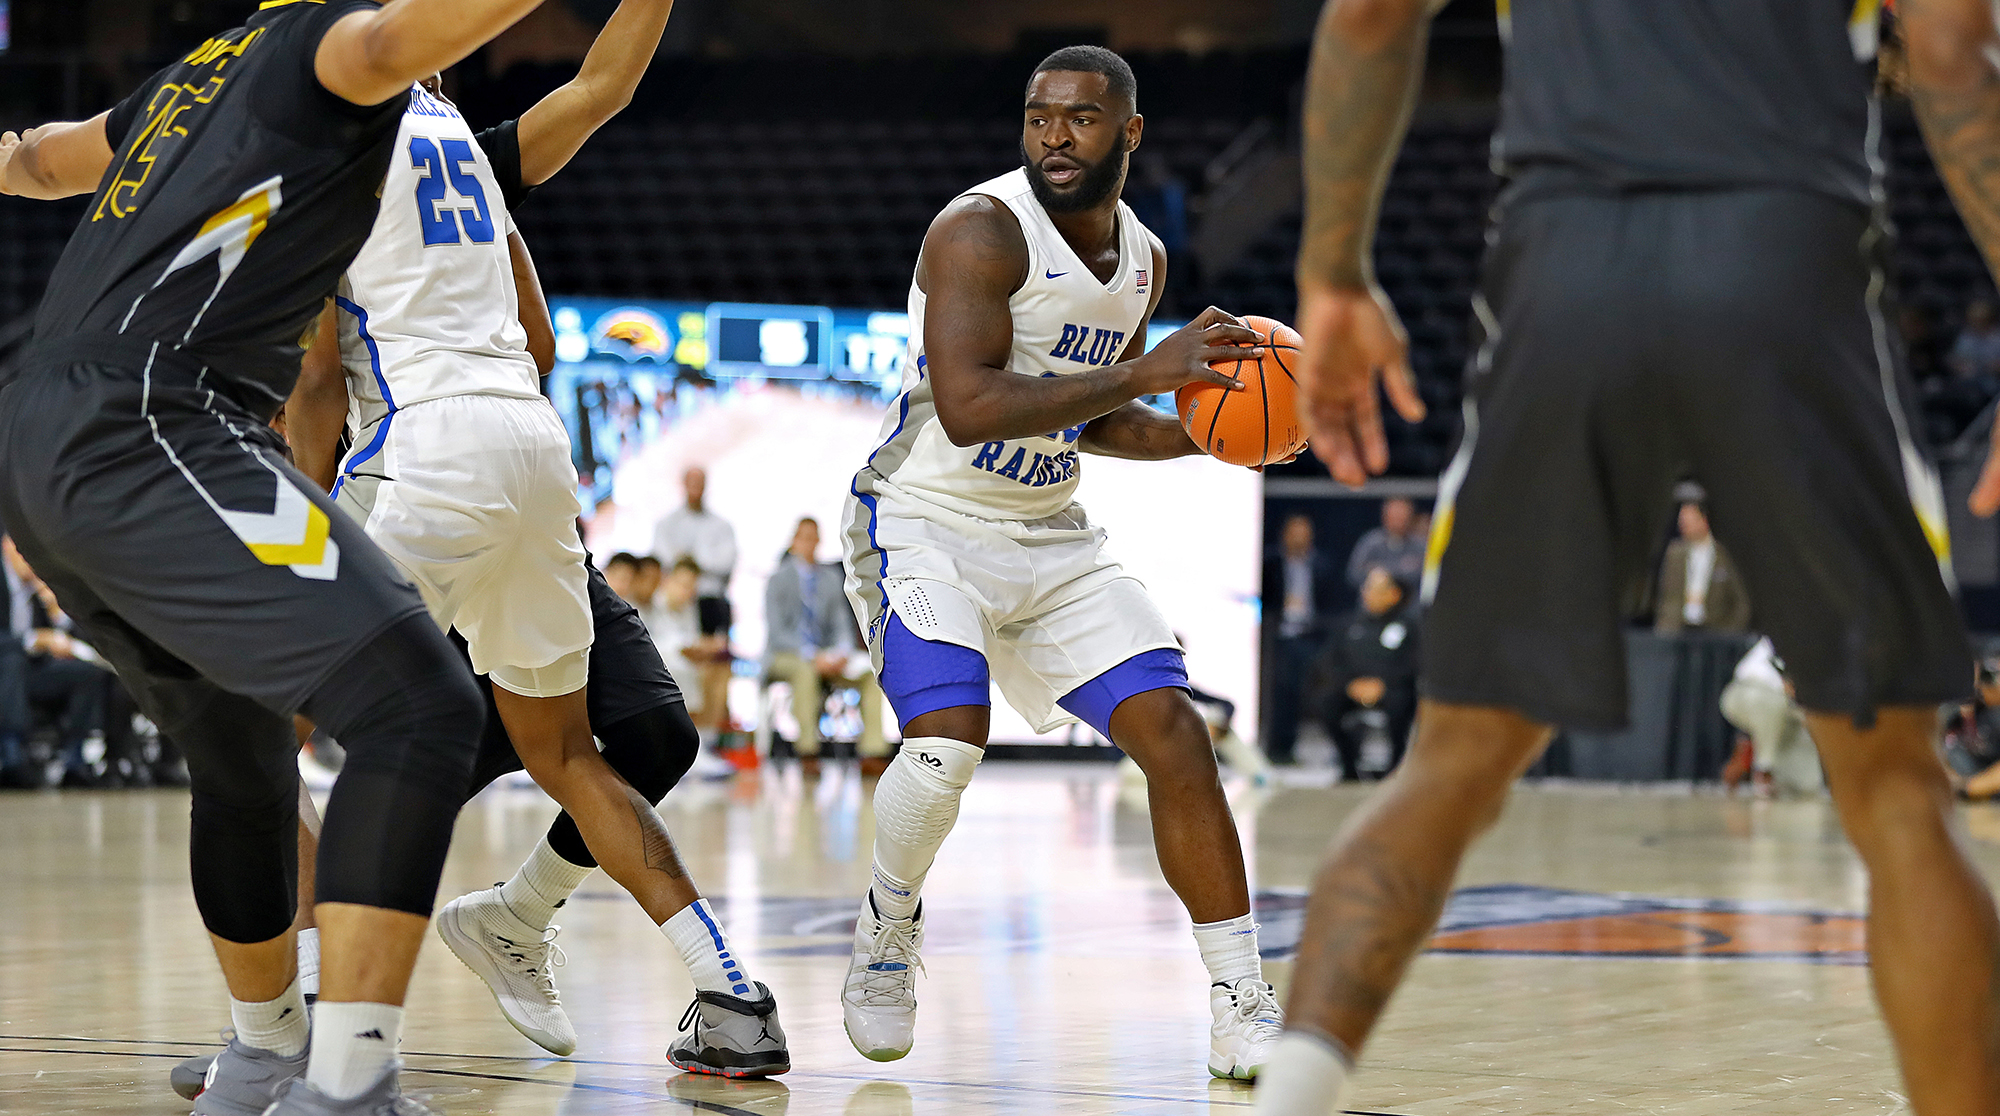 Giddy Potts - Men's Basketball - Middle Tennessee State